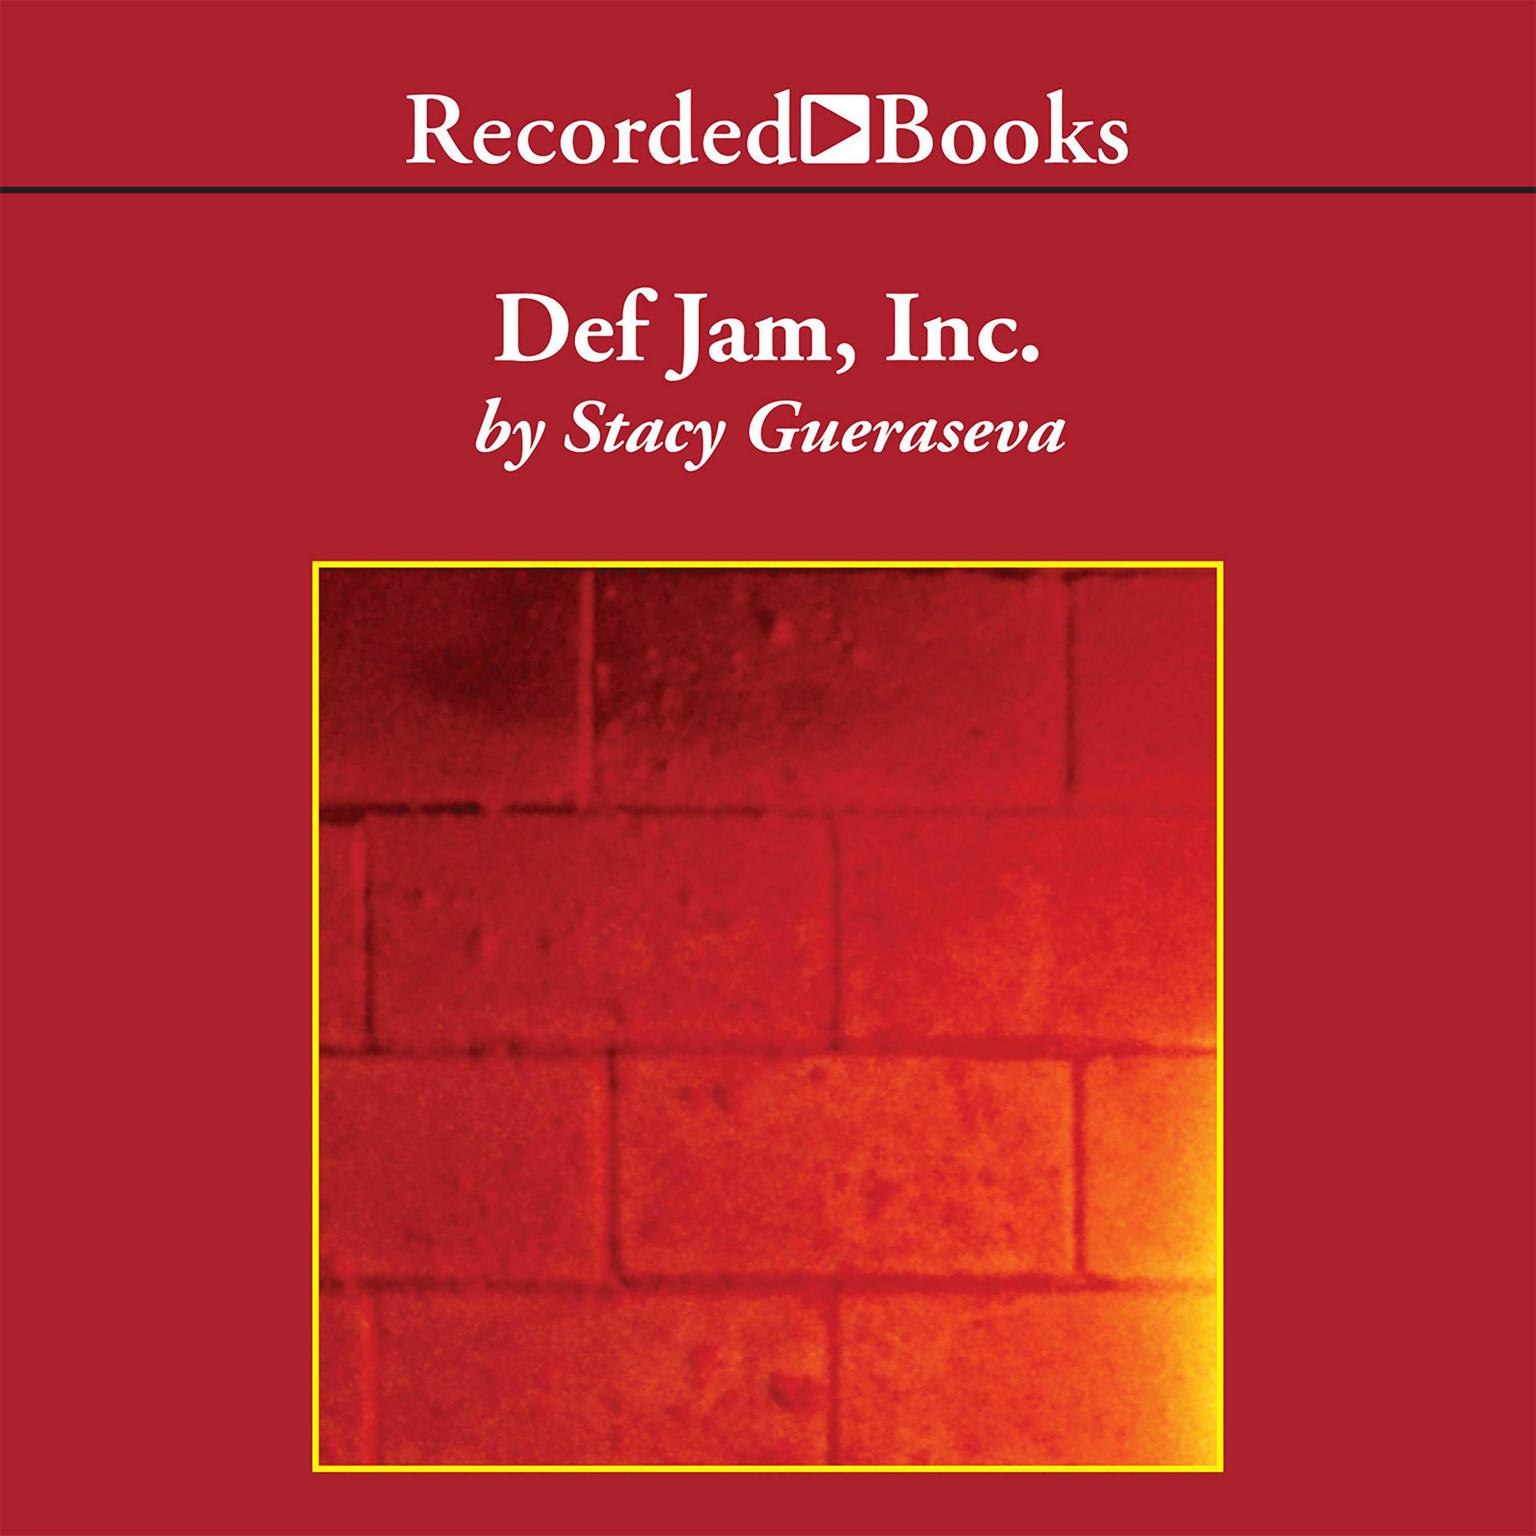 Printable Def Jam, Inc.: Russell Simmons, Rick Rubin, and the Extraordinary Story of the World's Most Influential Hip-Hop Label Audiobook Cover Art